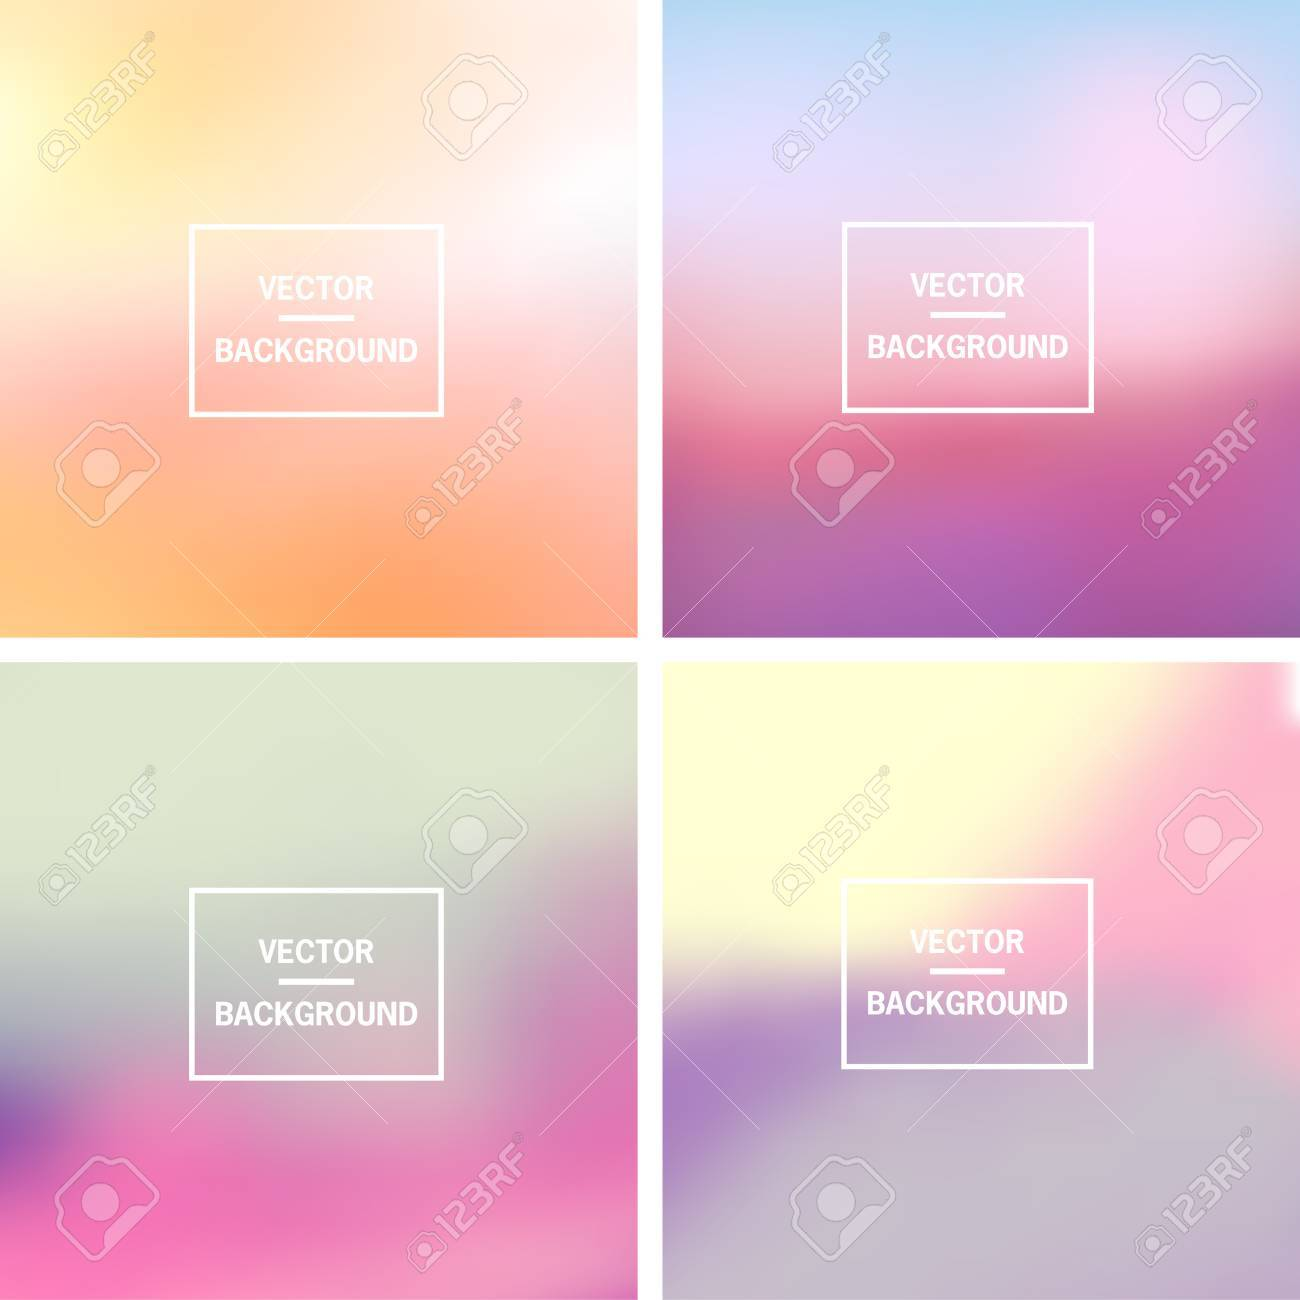 Abstract colorful blurred vector backgrounds. Elements for your website or presentation. - 46960866